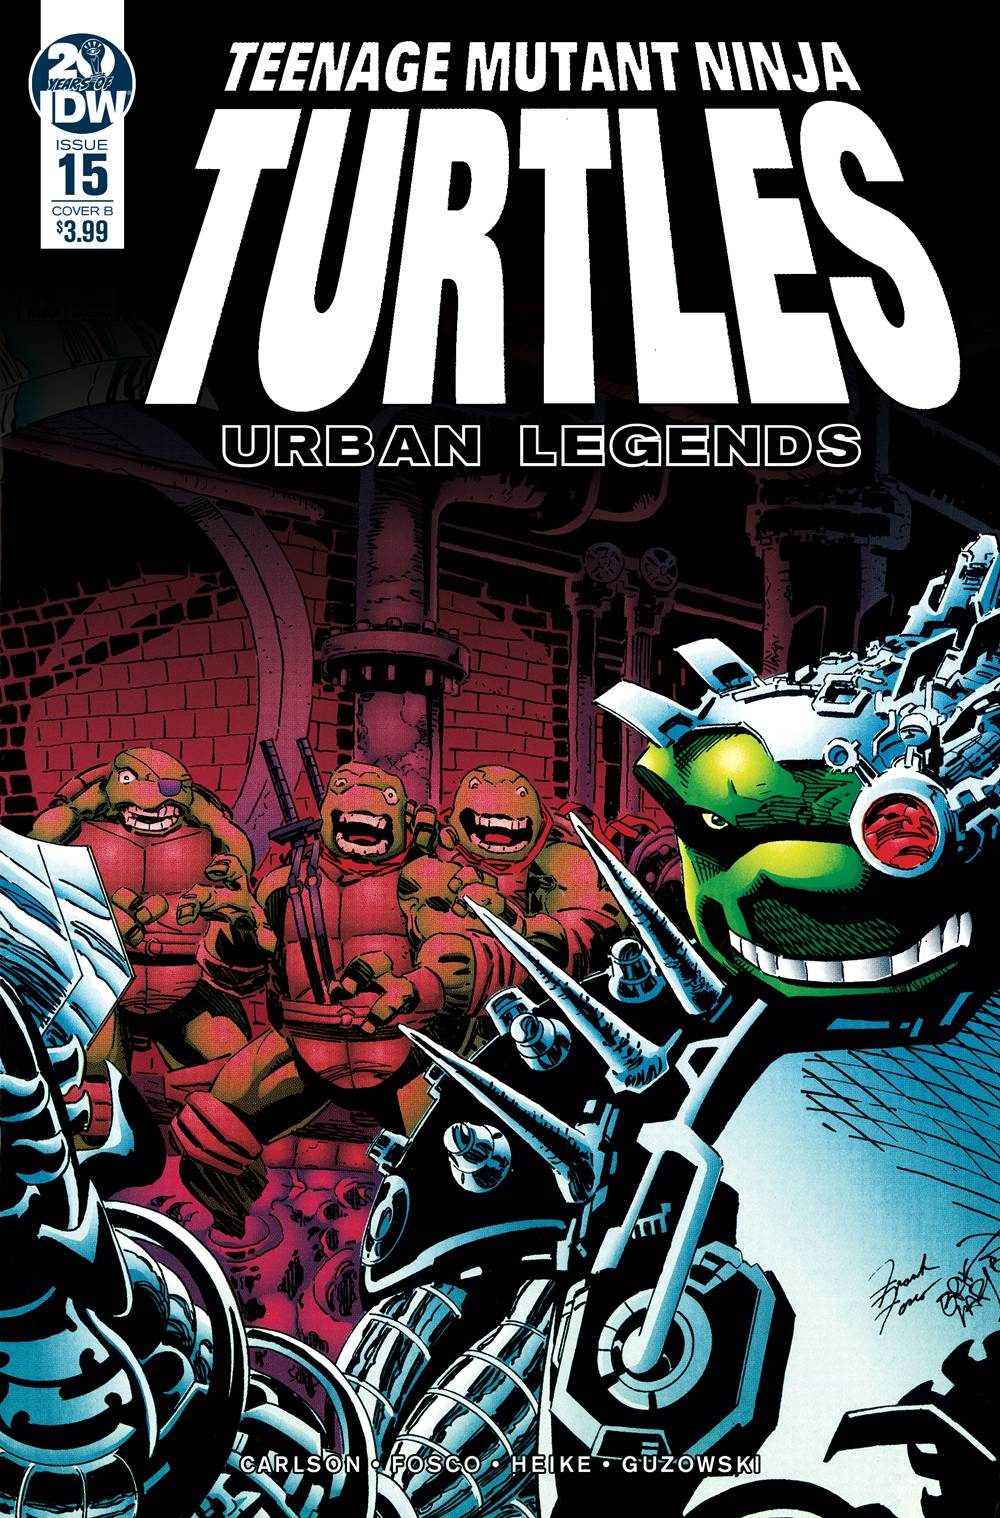 TMNT URBAN LEGENDS 15 CVR B FOSCO & LARSEN.jpg